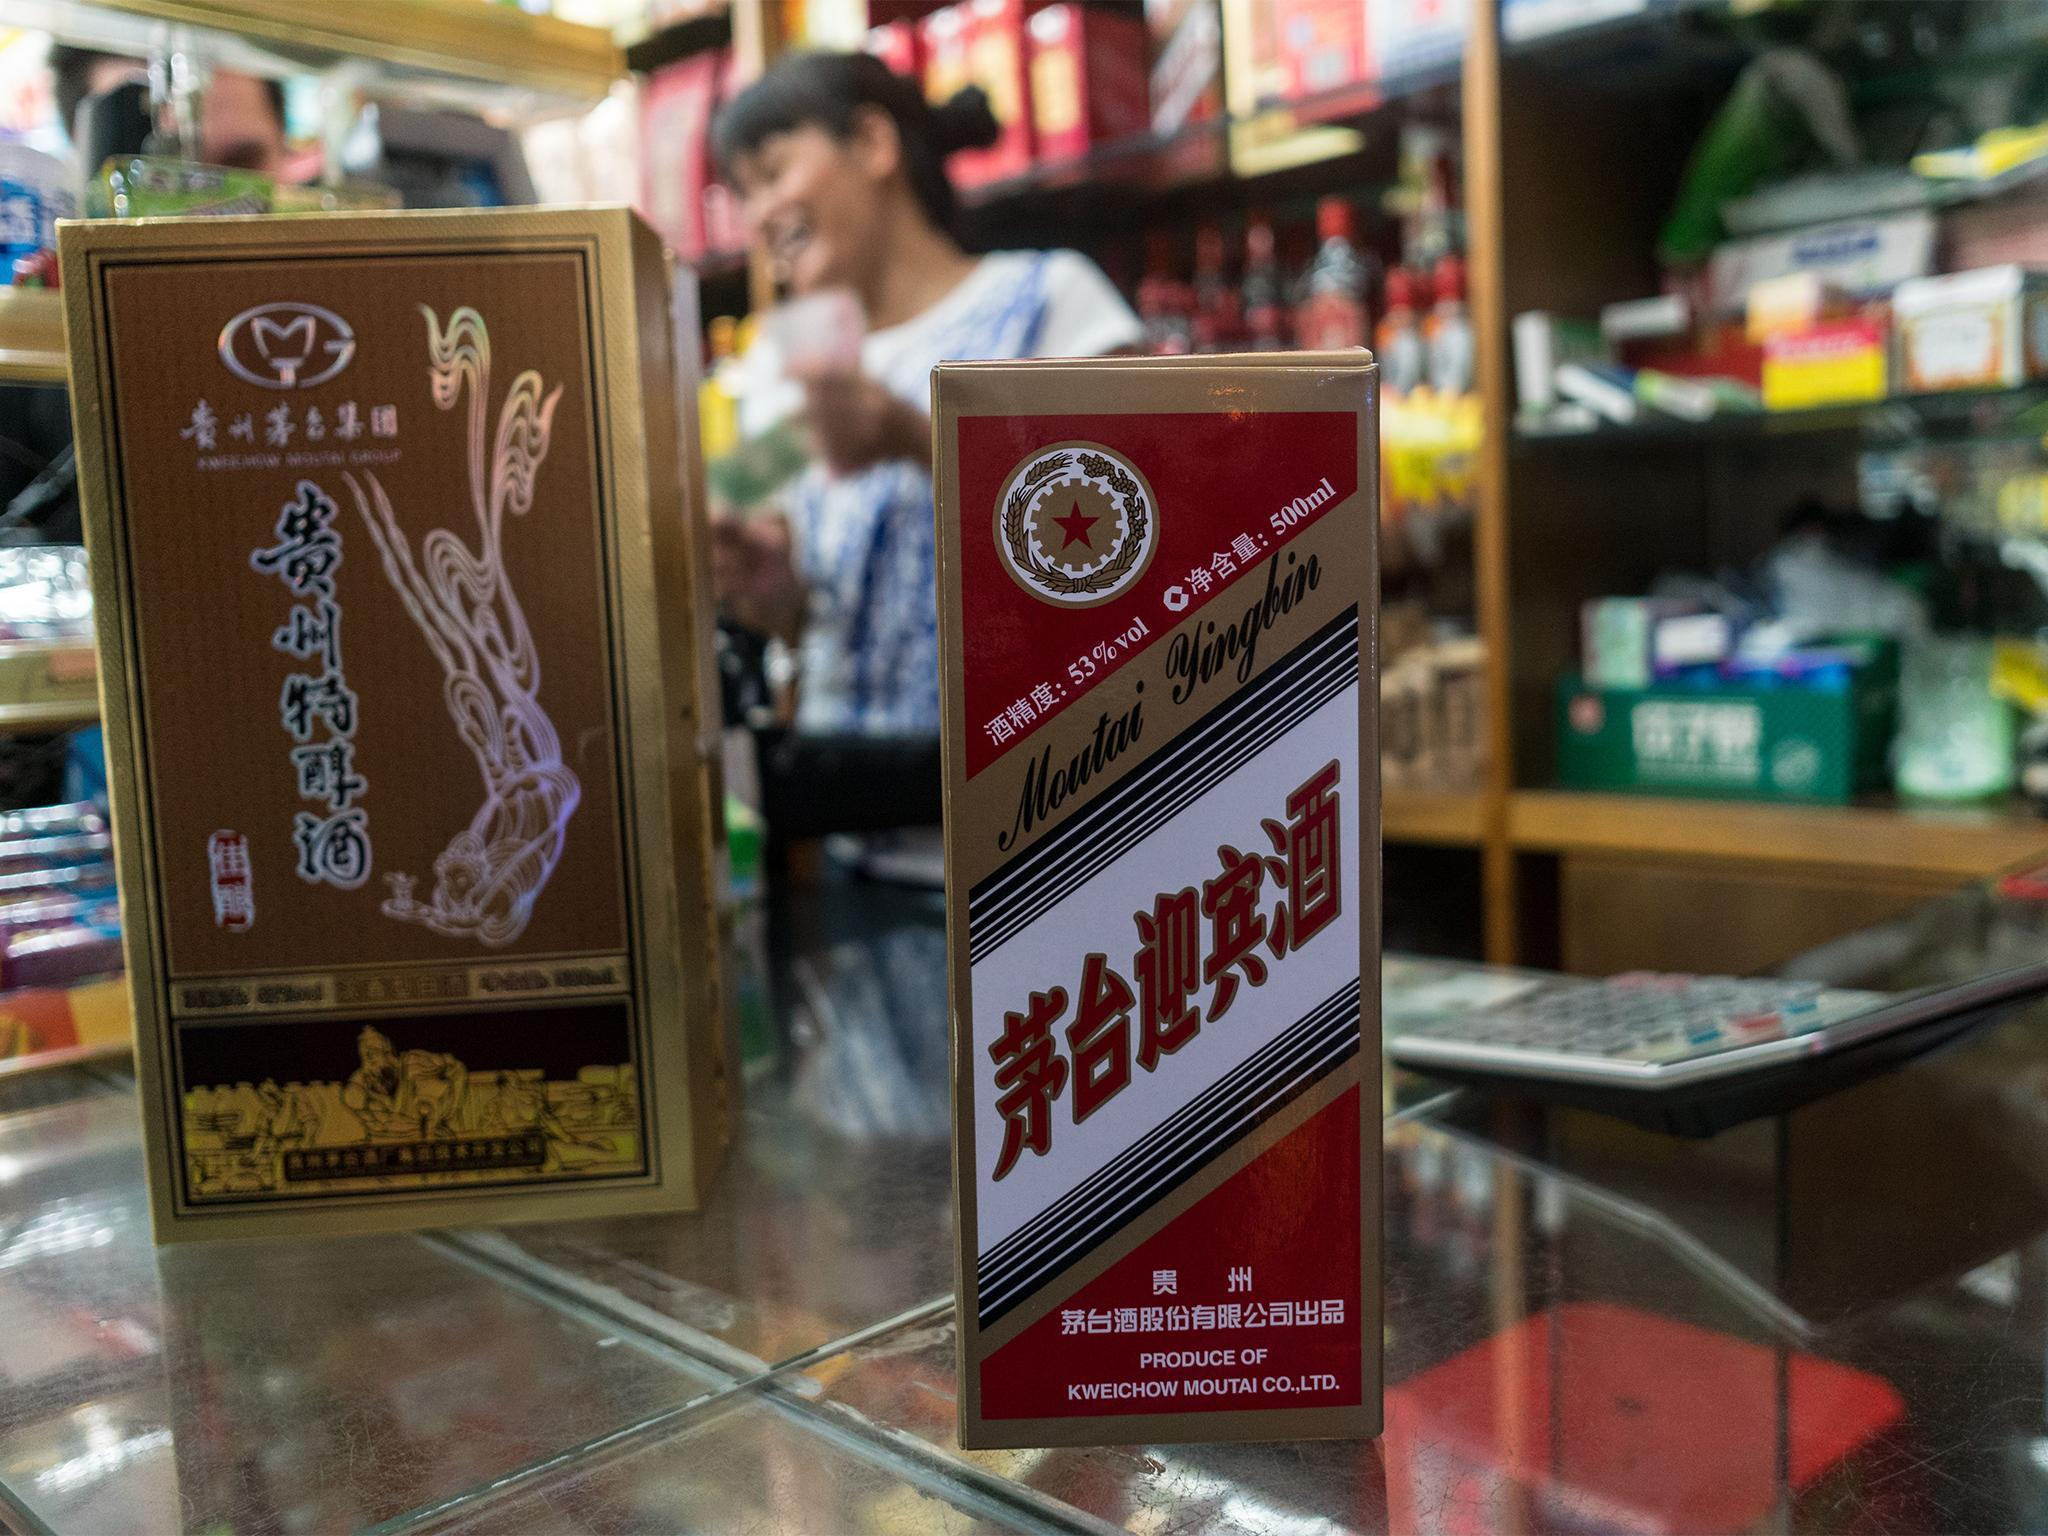 Chinese police arrest 15 people in crackdown against counterfeit alcohol